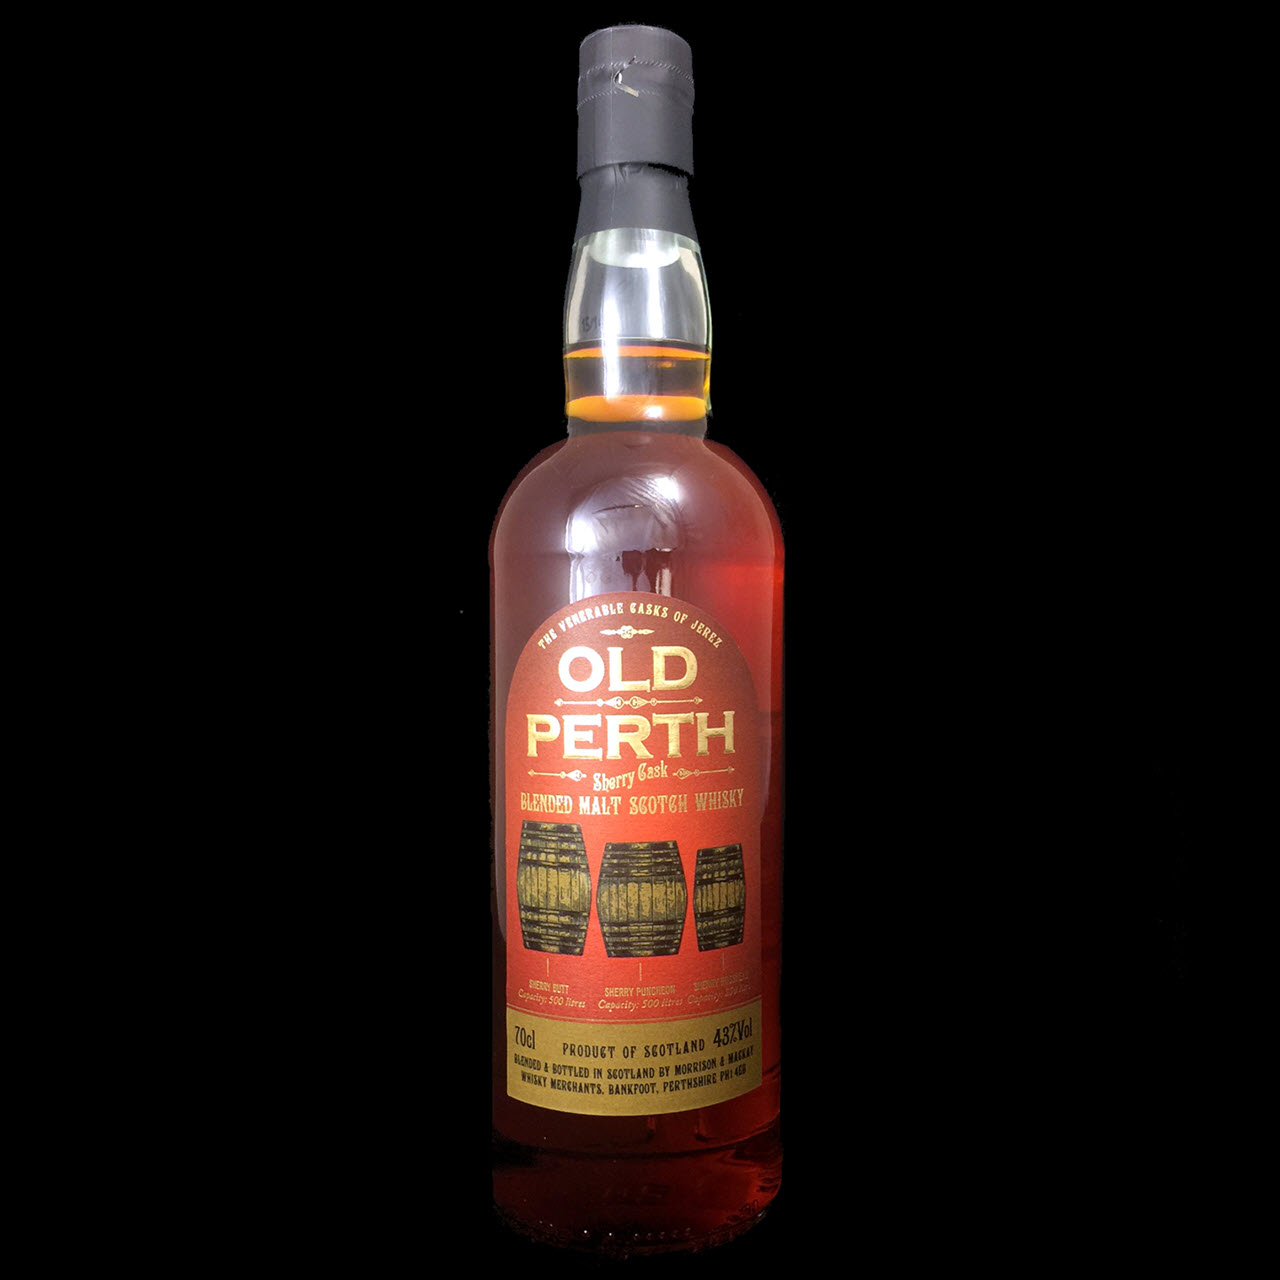 Old-Perth-Sherry-Cask-finished.jpg